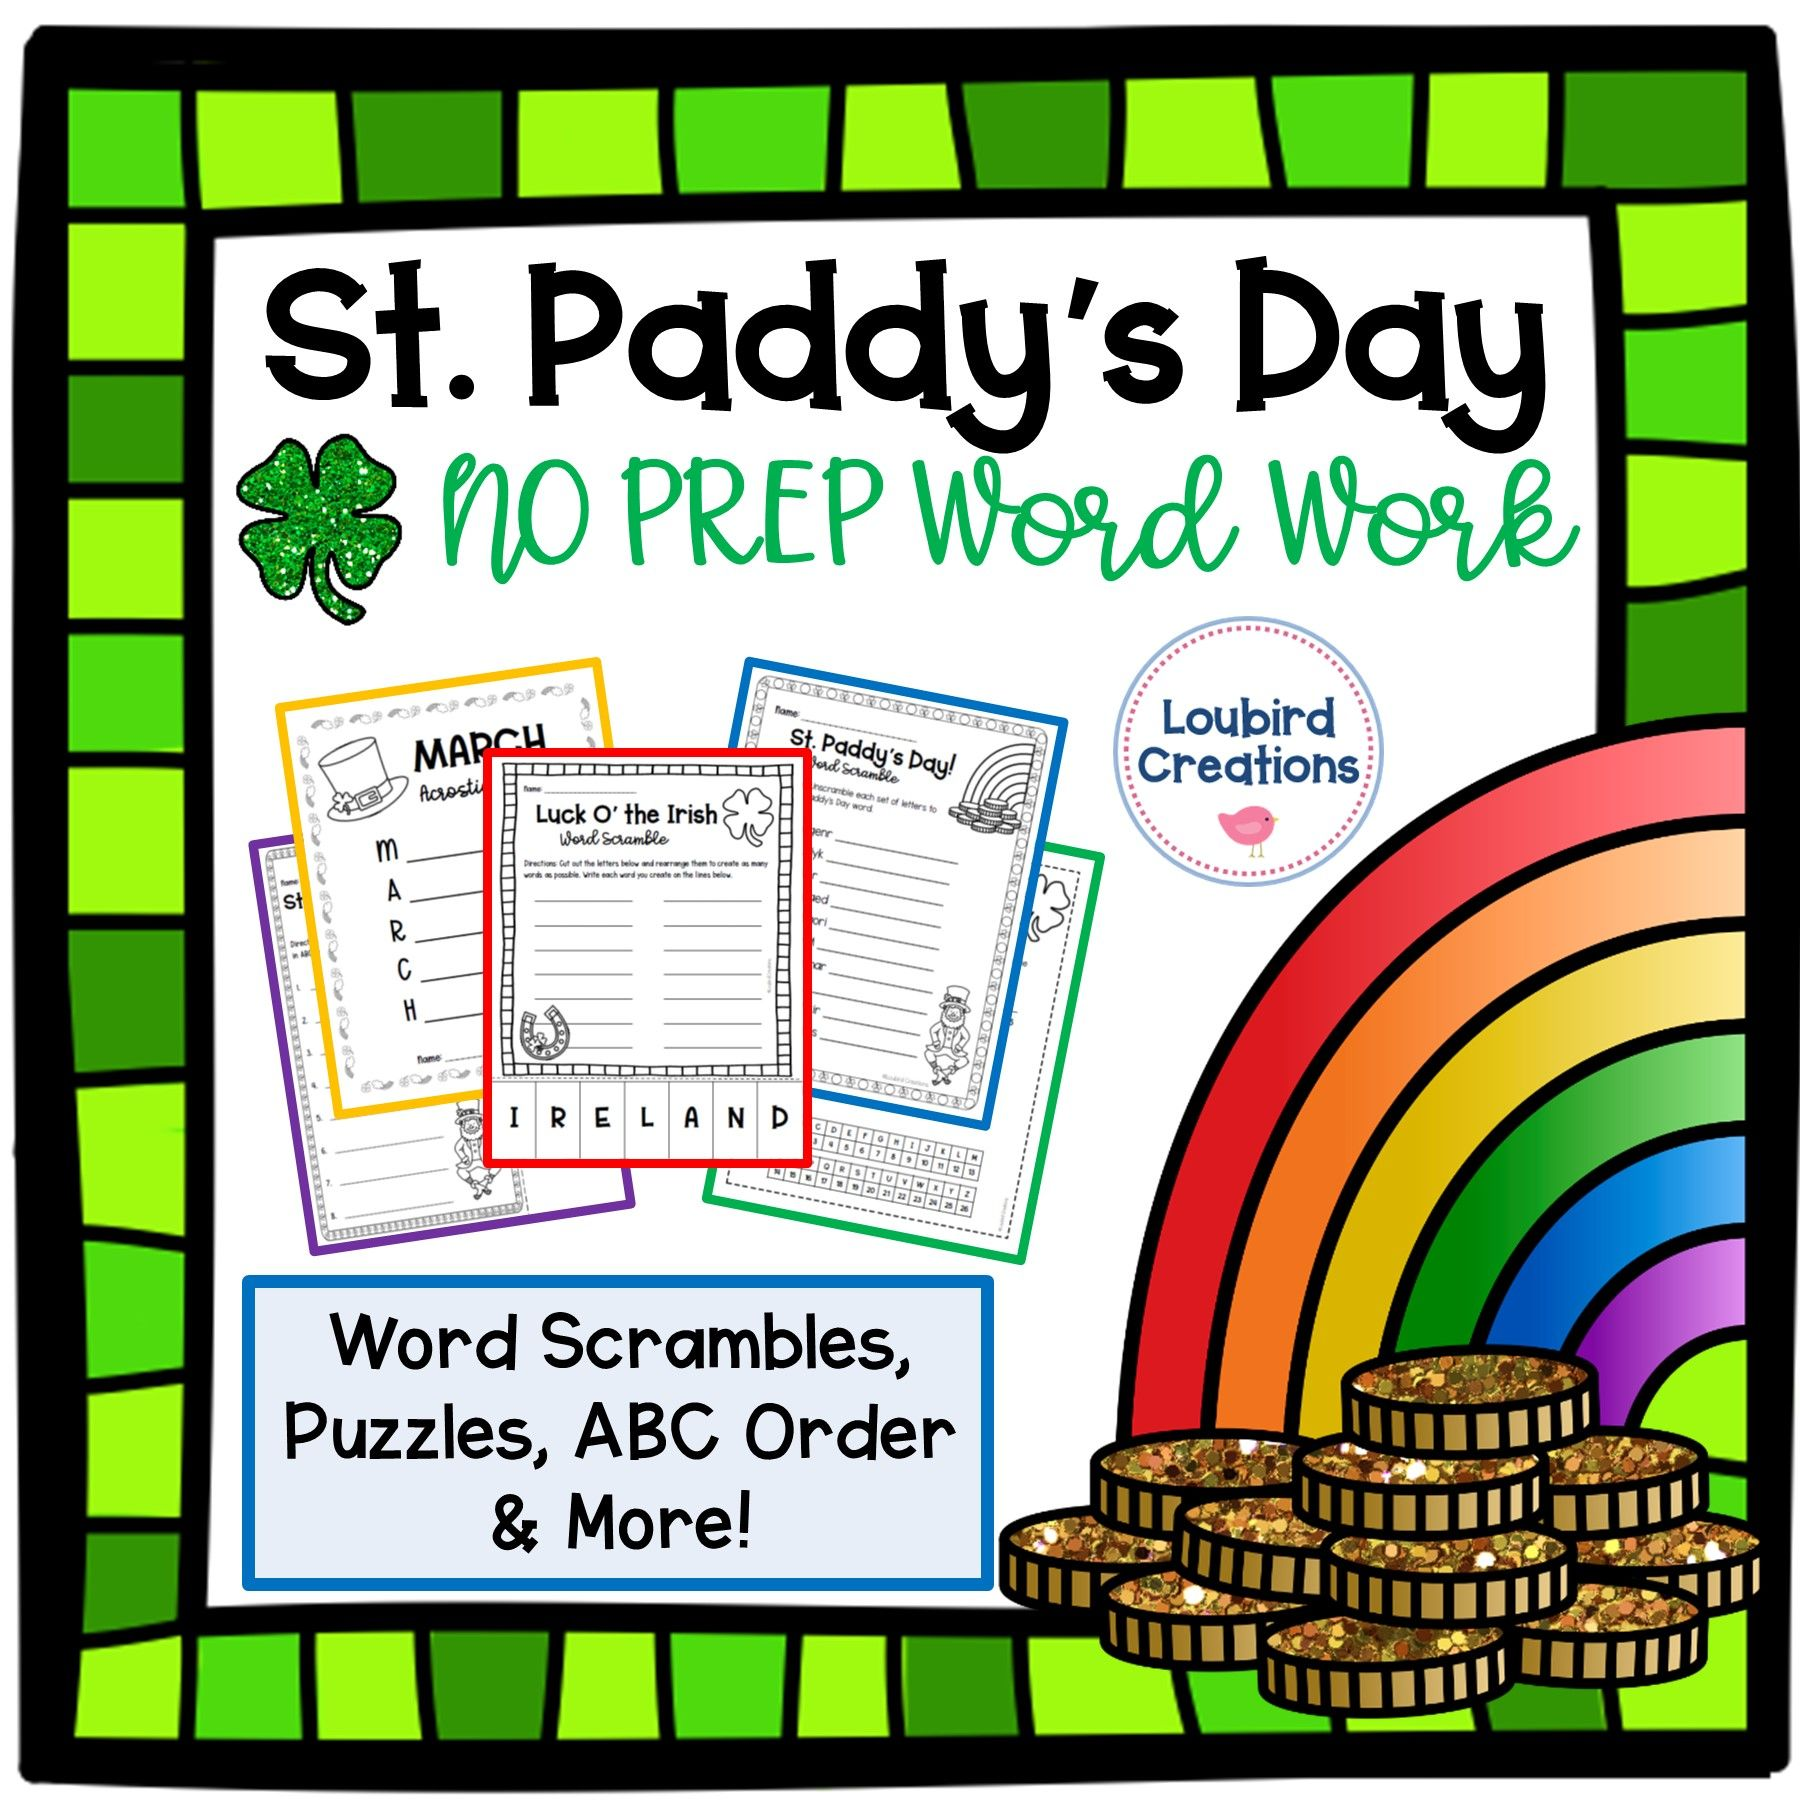 St Paddys Day No Prep Word Work Spelling